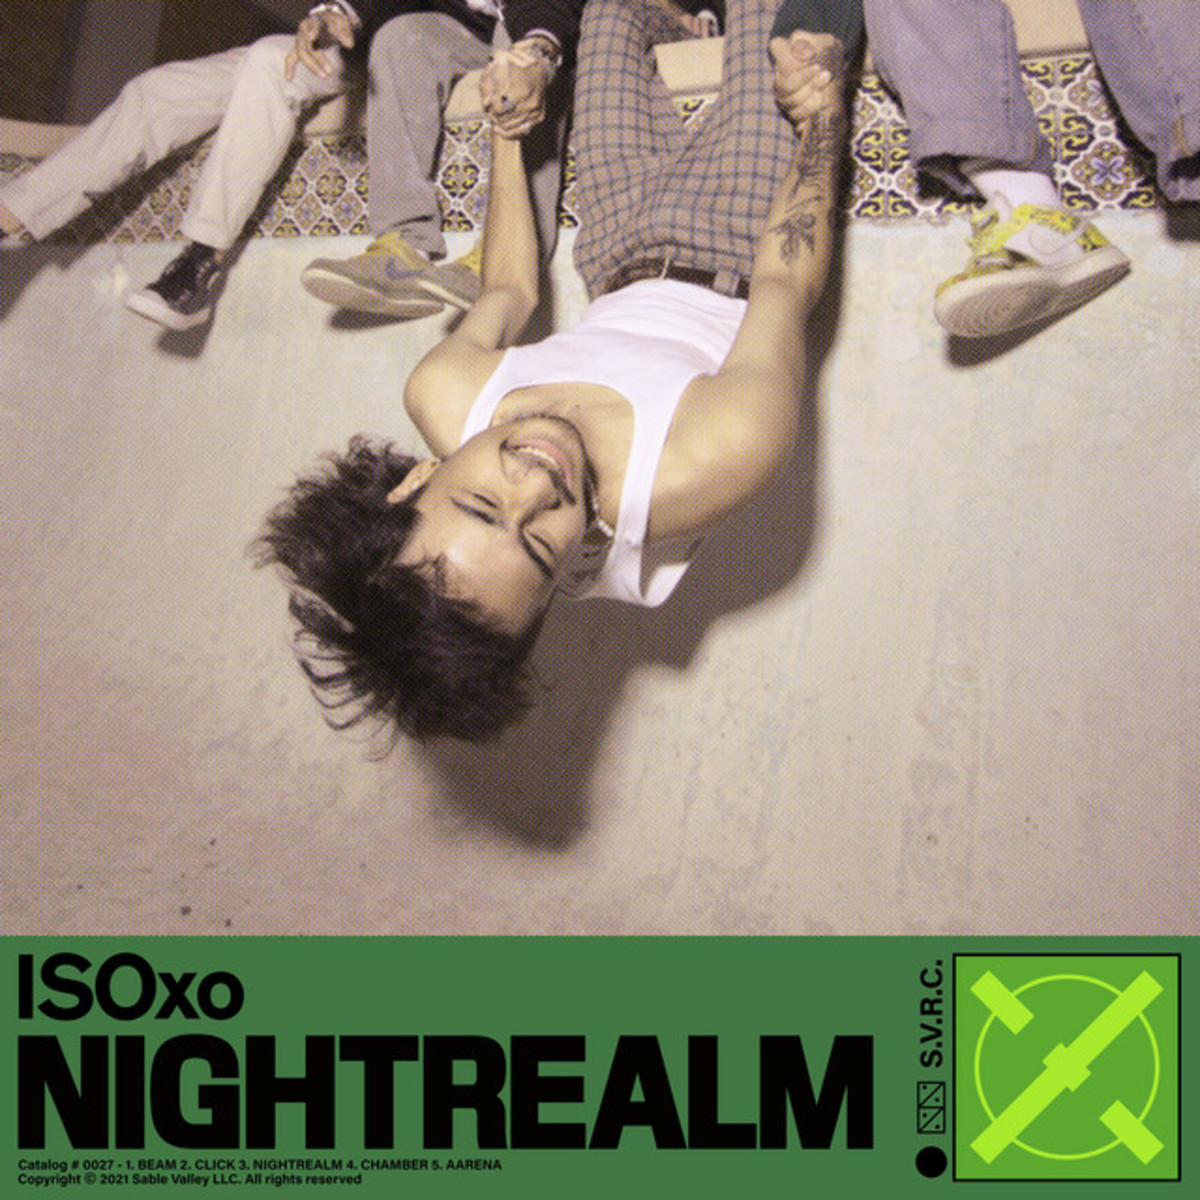 """Artwork for ISOxo's """"Nightrealm"""" EP."""